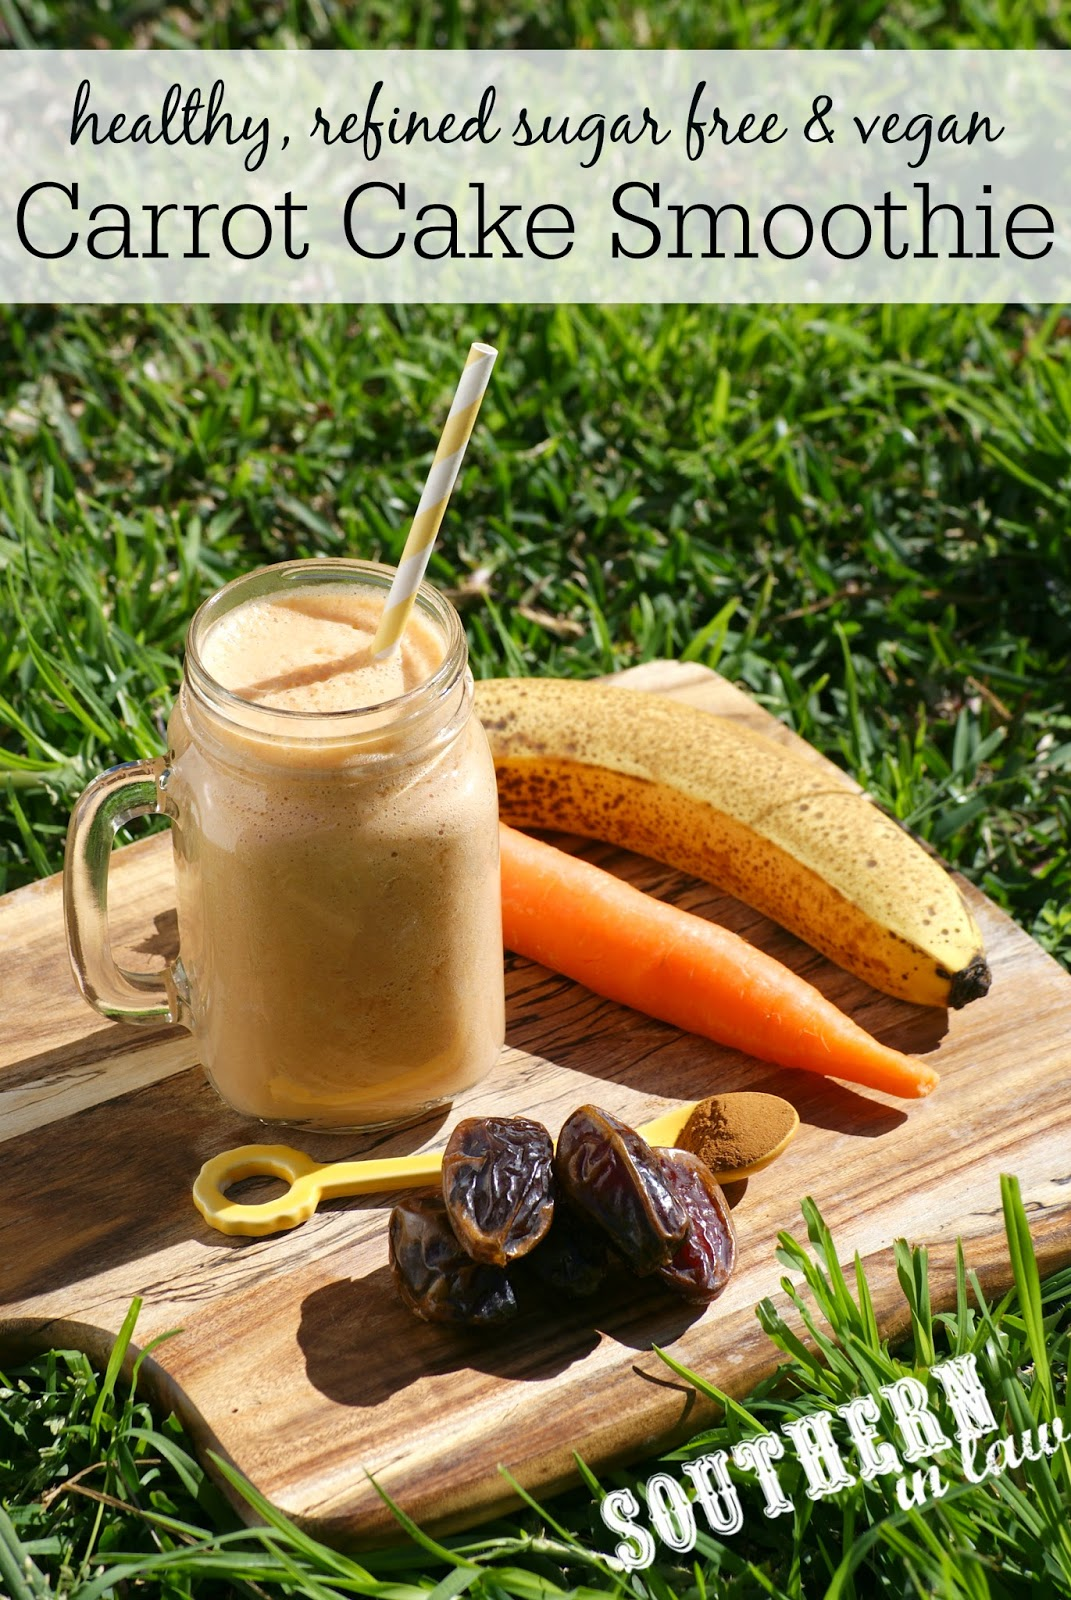 Vegan Carrot Cake Smoothie Recipe - low fat, gluten free, vegan, sugar free, paleo